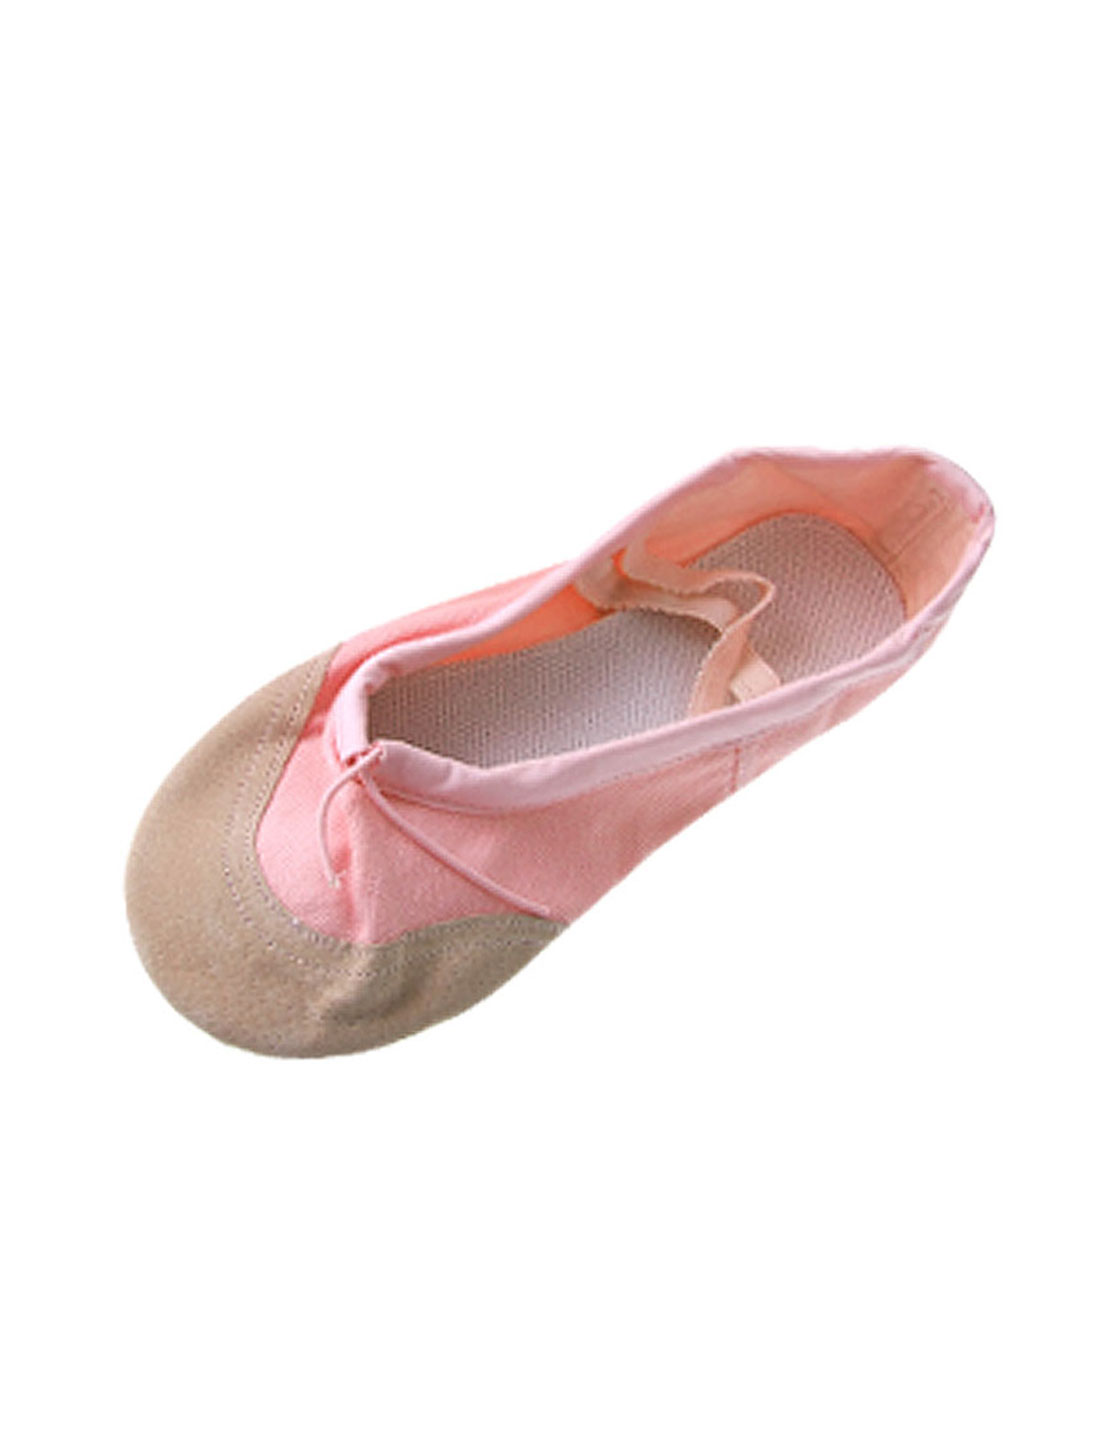 Ladies Pink Soft Canvas Elastic Band Ballet Dancing Shoes US Size 8